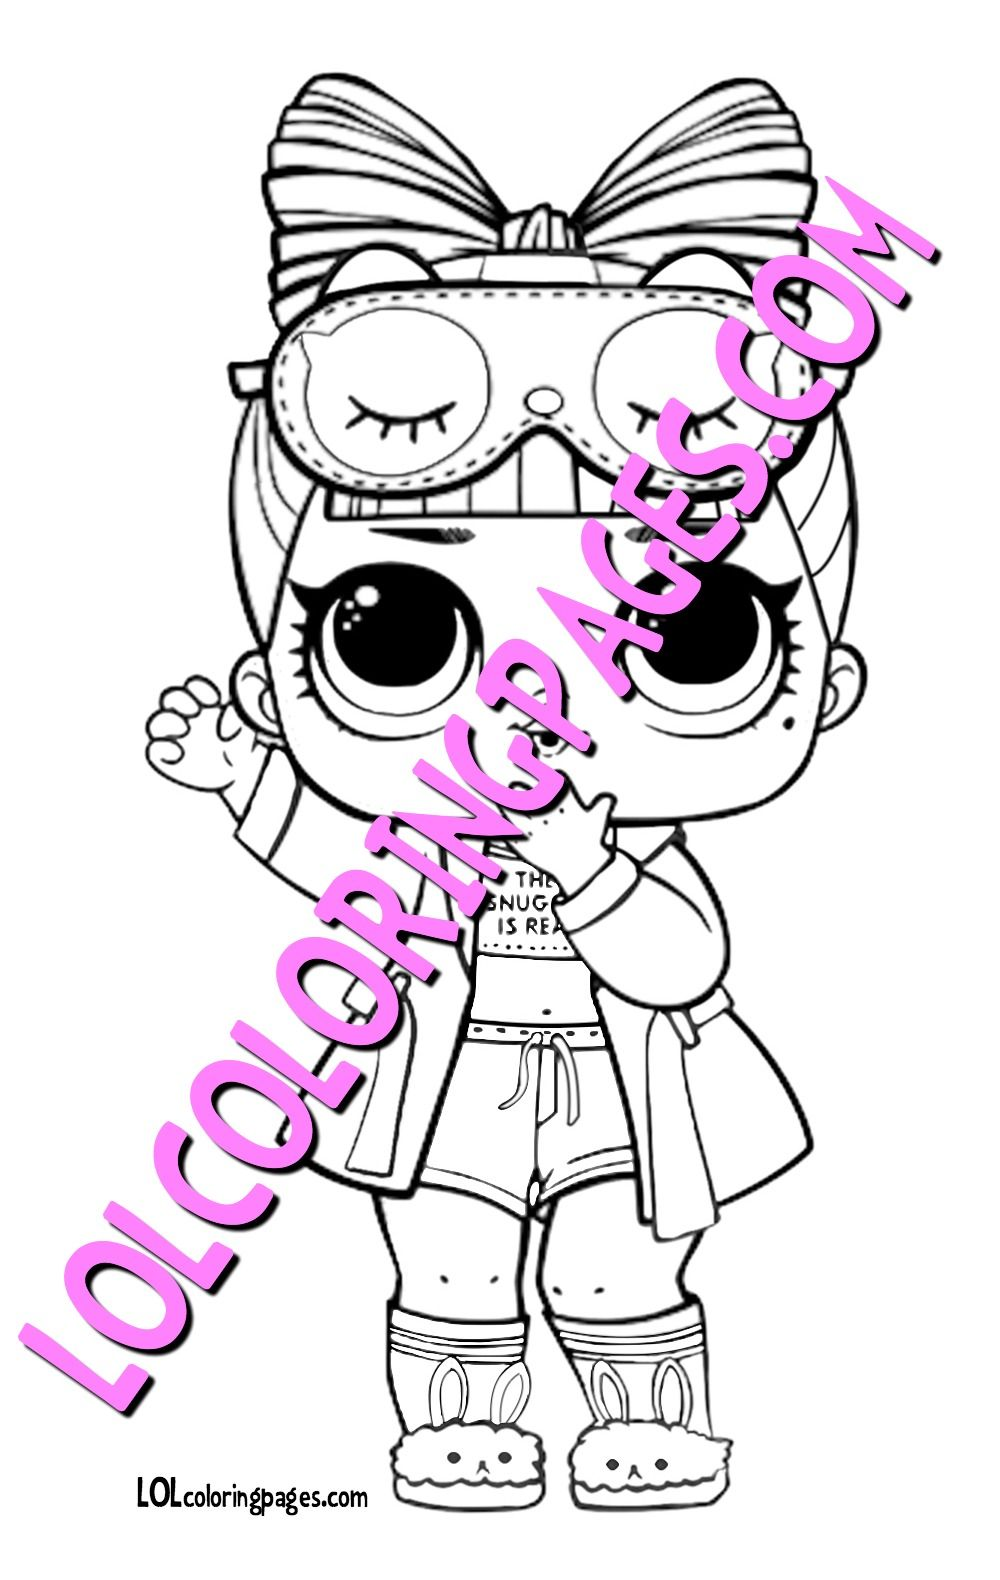 Snuggle Babe Lol Surprise Doll Free Coloring Page To Print Come To Our Website To Download And Print Lol Surprise Dolls For 100 Free Are You Planning An Lol